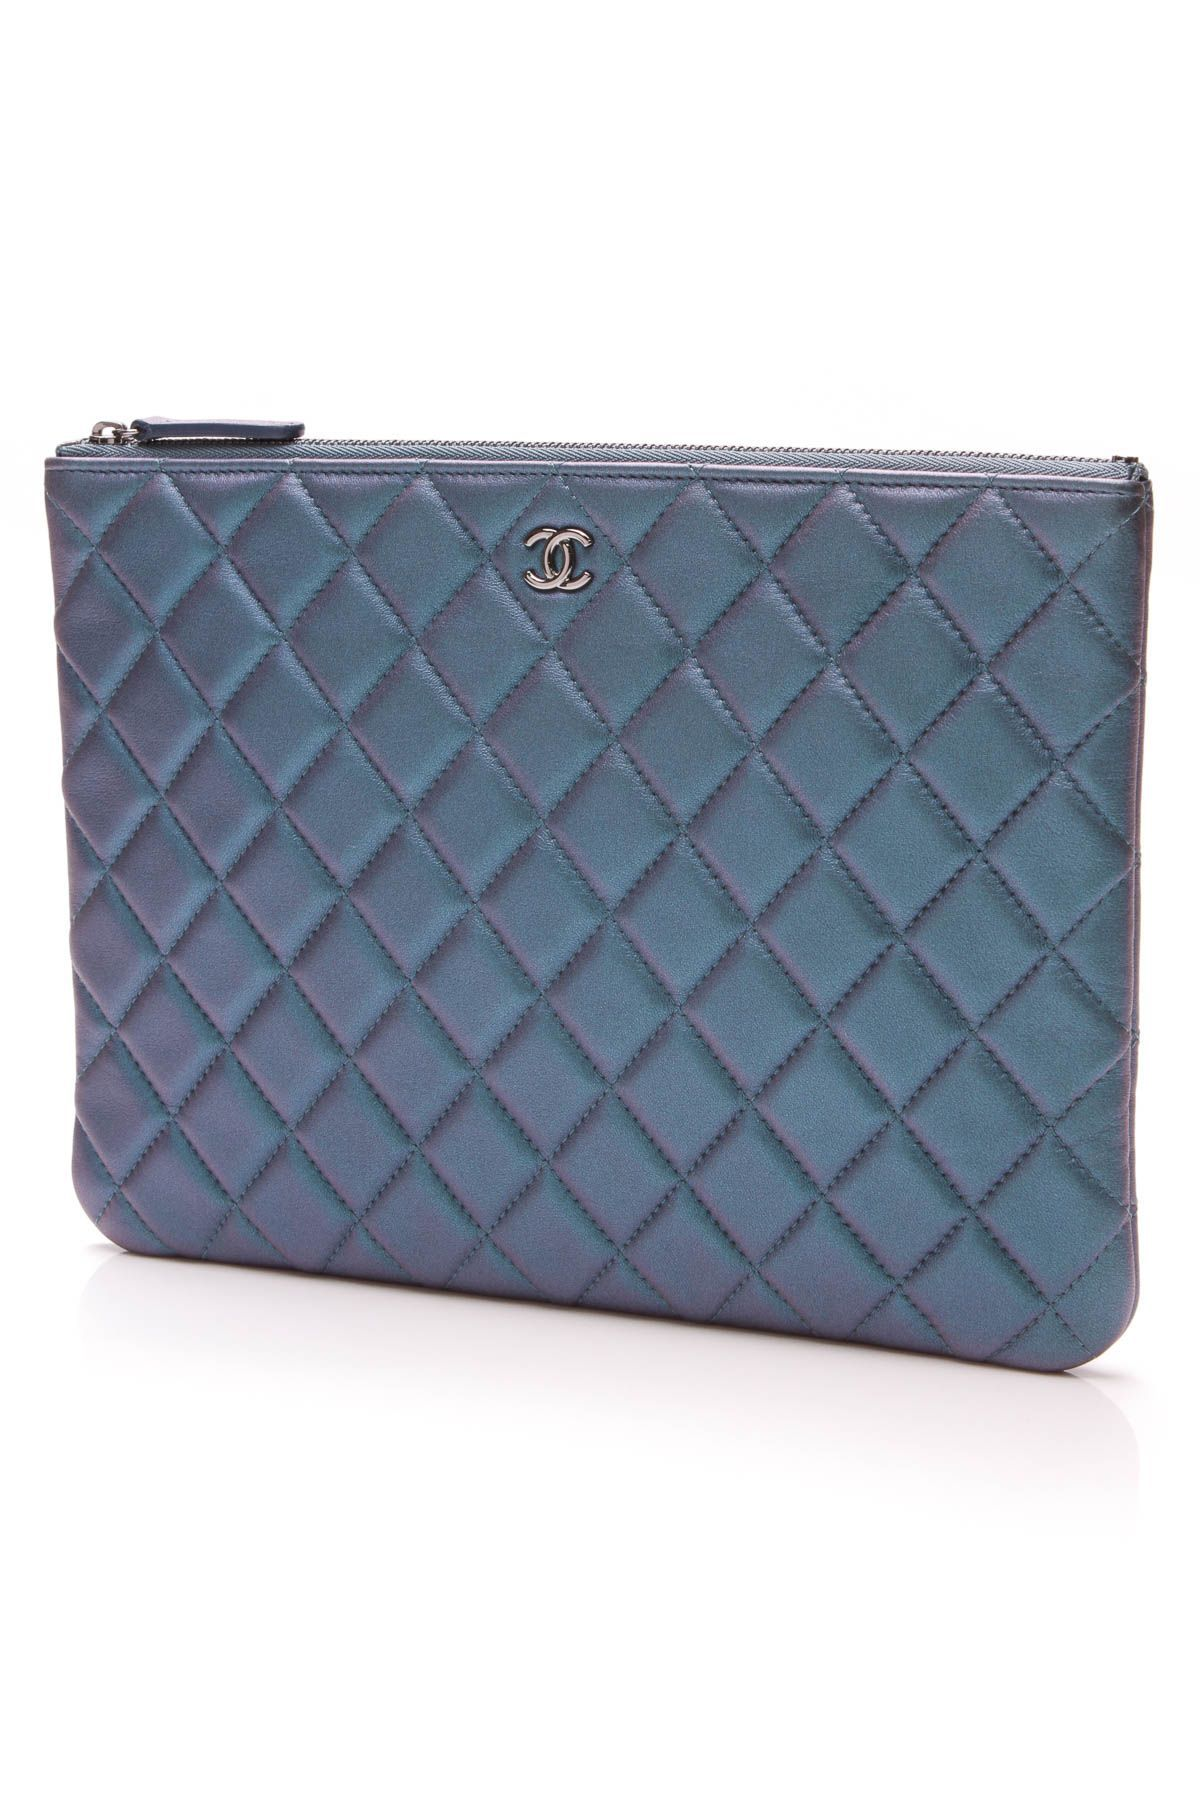 c9f822328502 Chanel Medium O Case Clutch - Blue #clutchesdefine | Handbags in ...